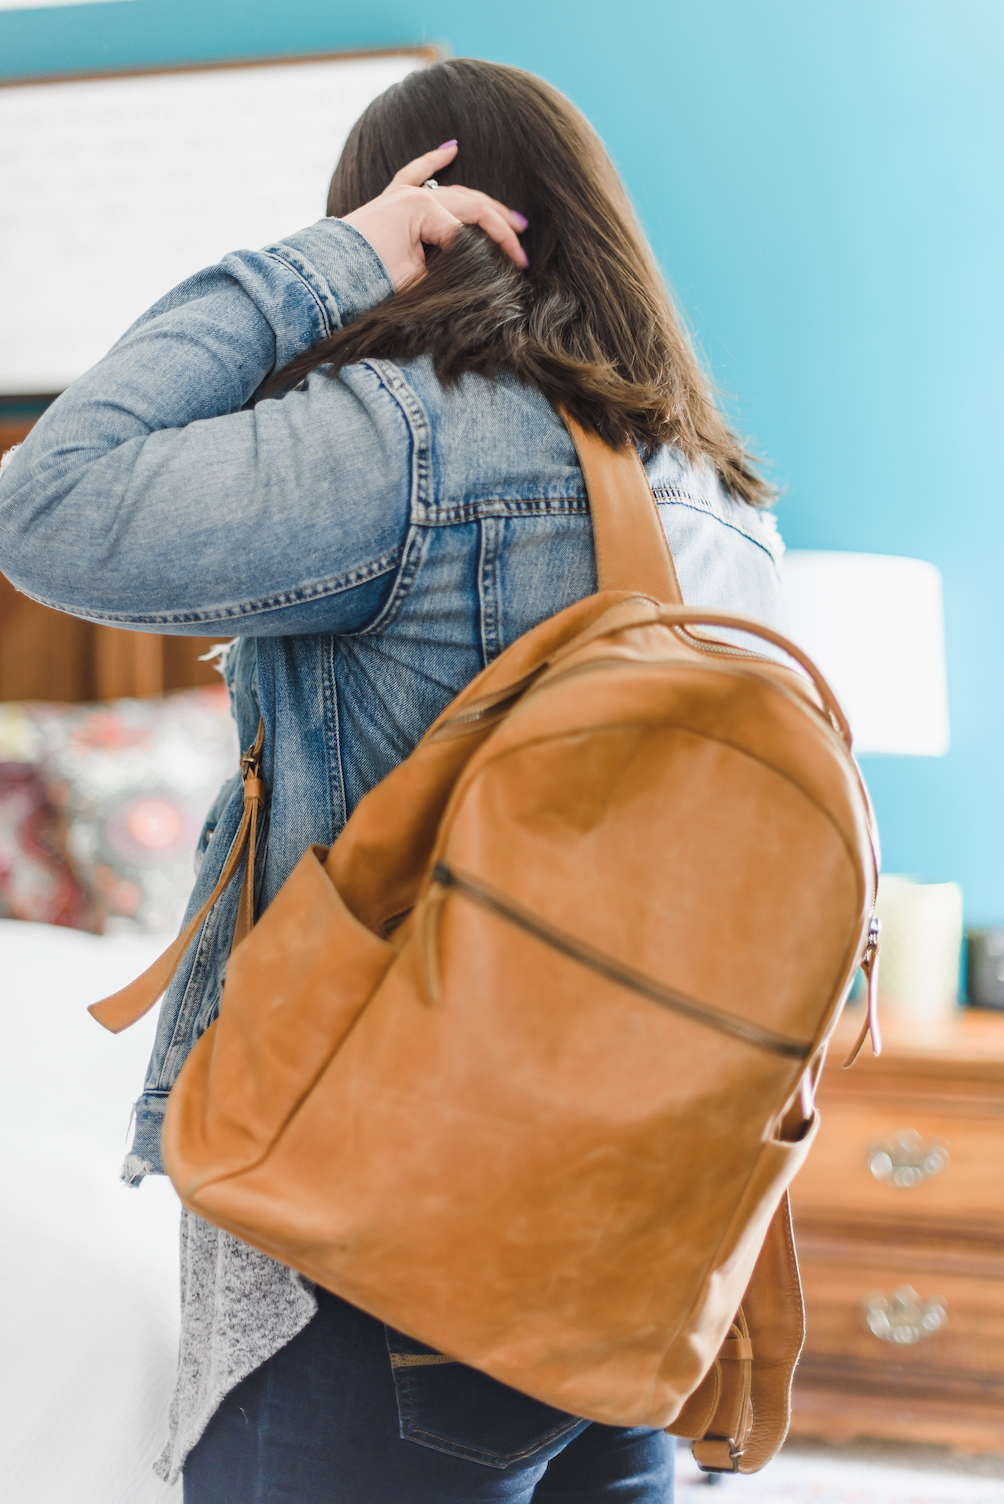 Camel backpack with denim jacket // A Week Of Wearing Only 7 Pieces For 7 Days With Molly Stillman From Still Being Molly on The Good Trade